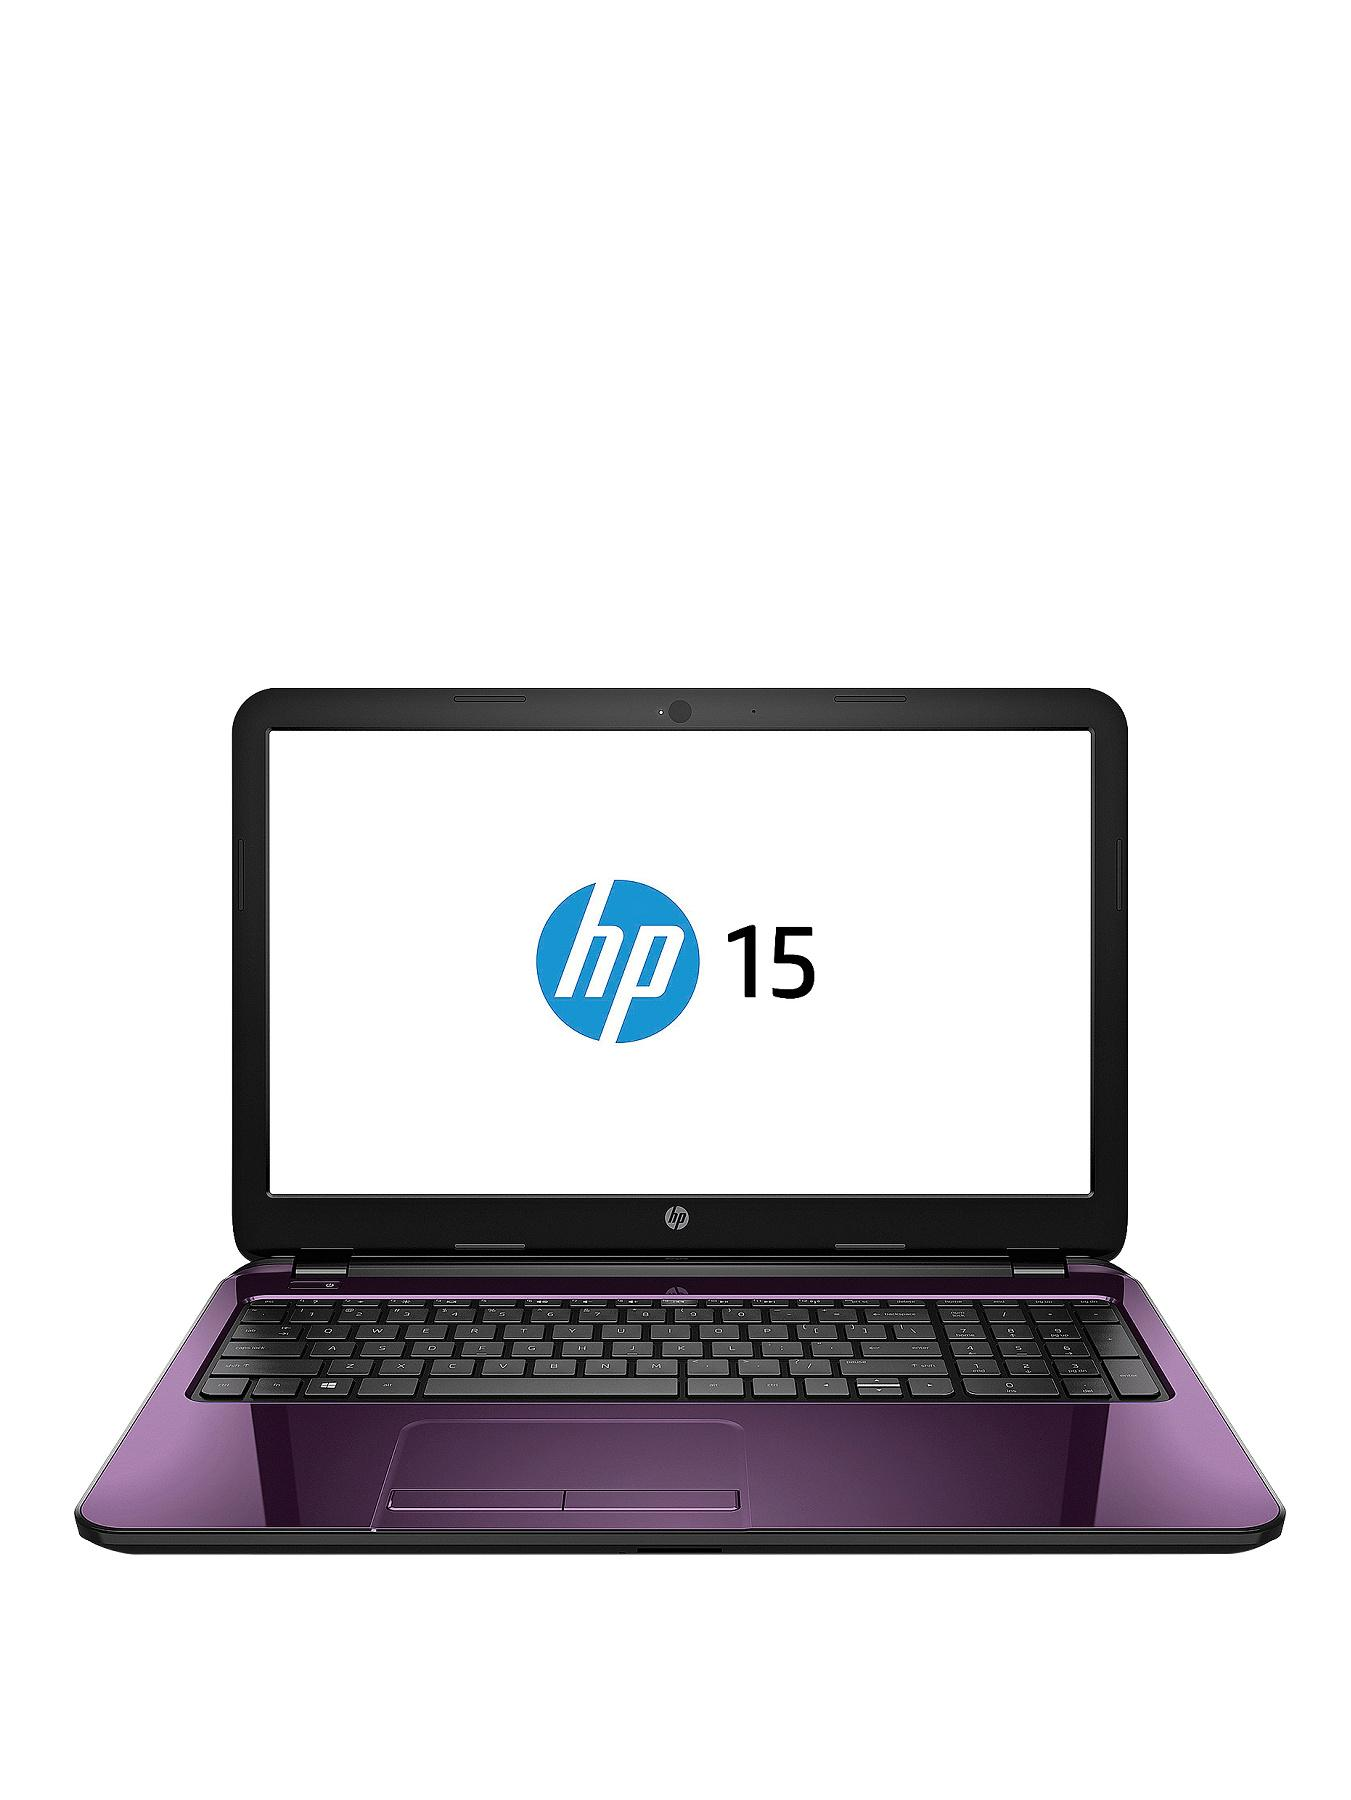 HP 15-r208na Intel Core i3 Processor, 8Gb RAM, 1Tb Hard Drive, Wi-Fi bgn, 15.6 inch Laptop Purple with Optional Microsoft Office 365 Personal